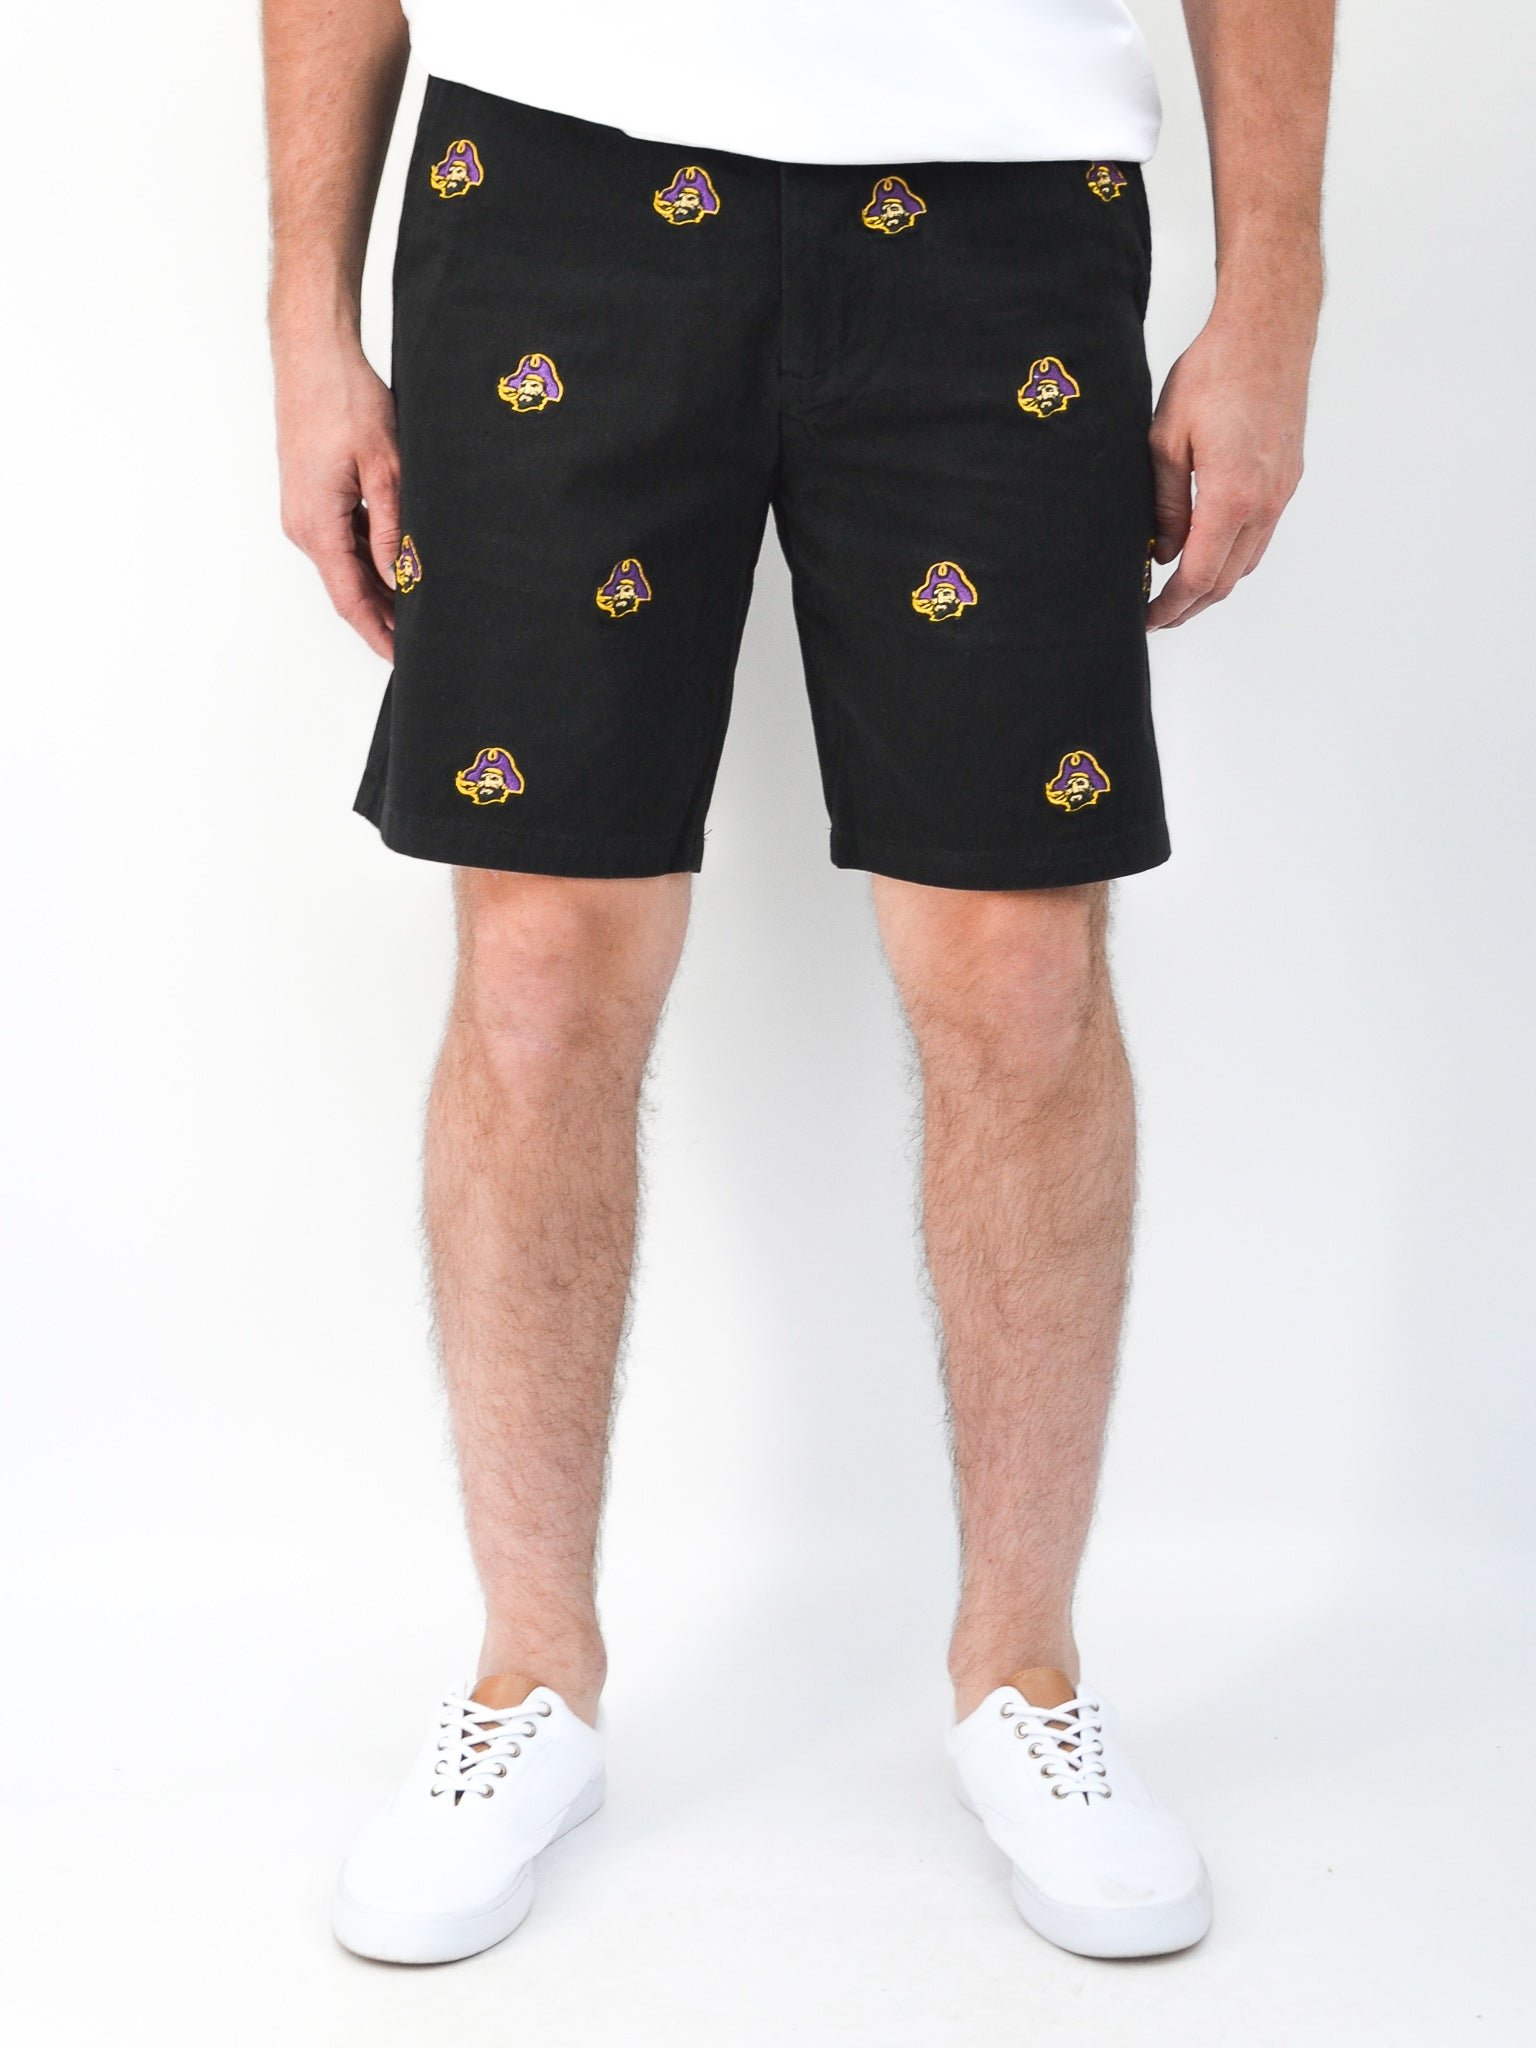 ECU Pirate Black Shorts